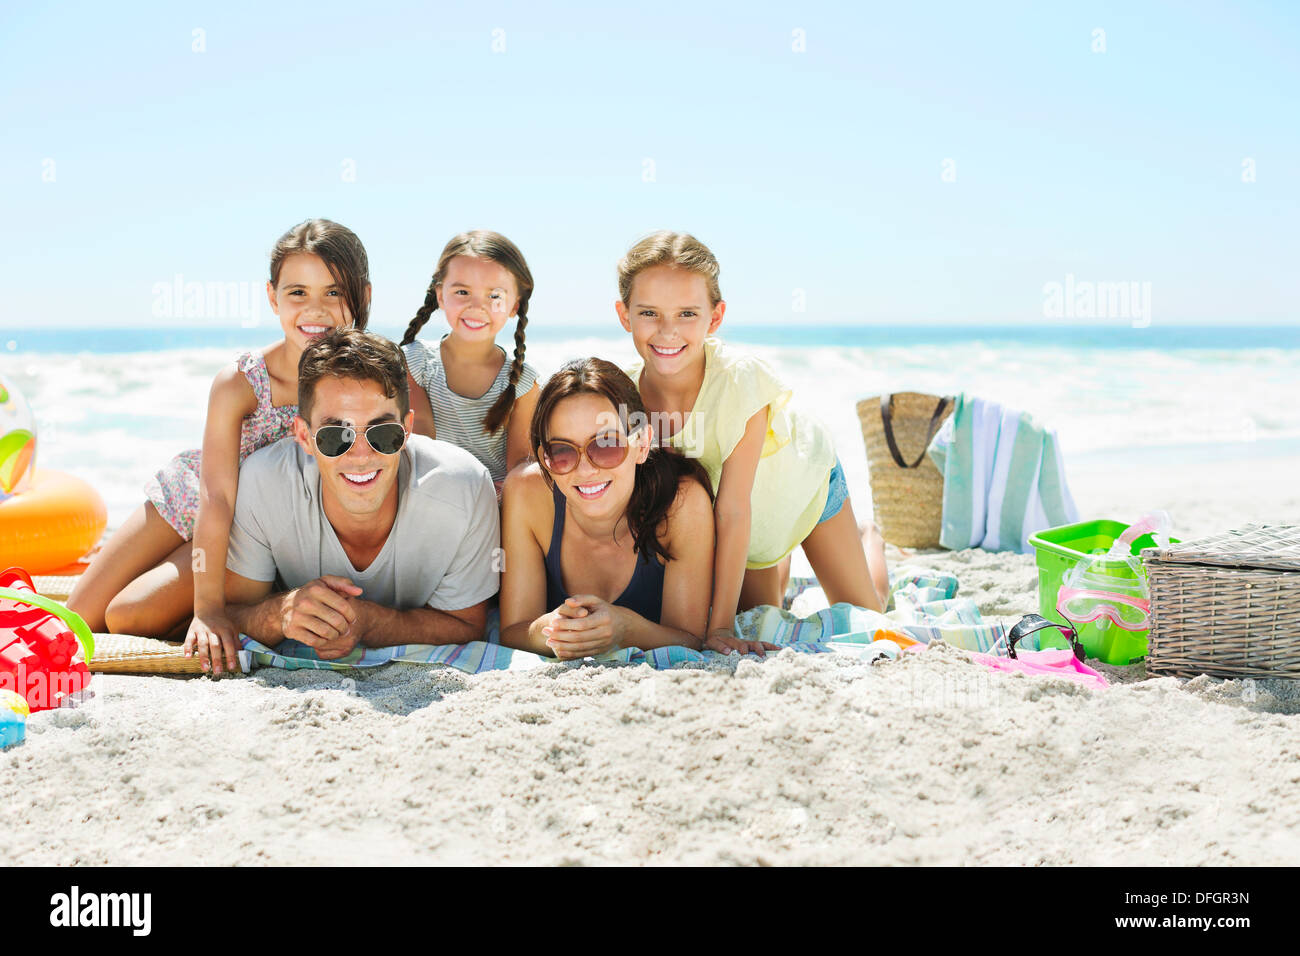 Portrait of smiling family on beach - Stock Image